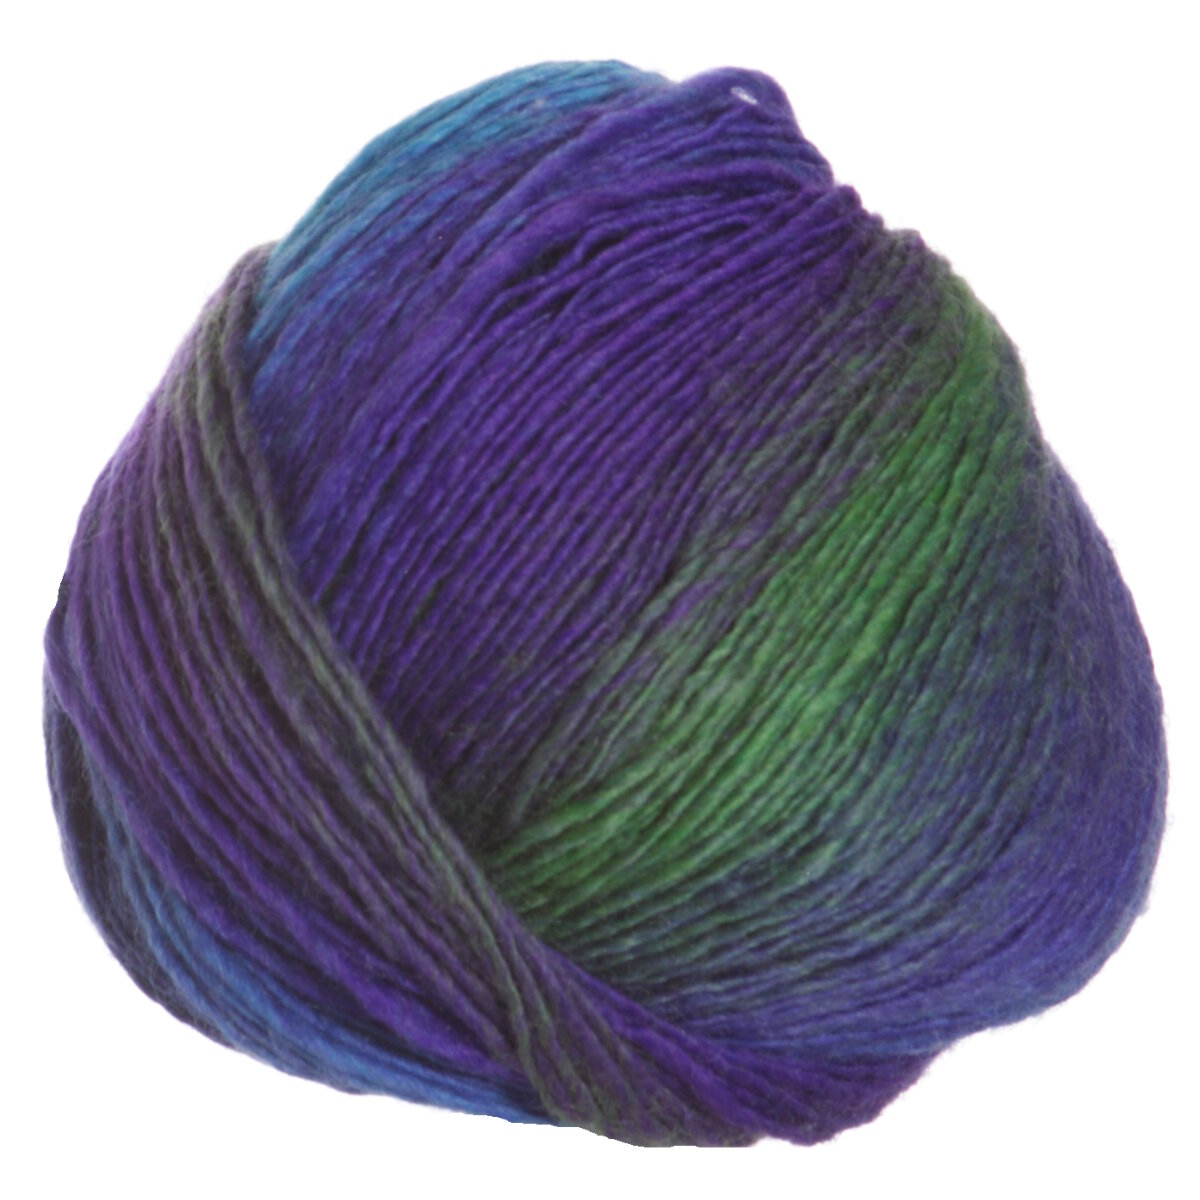 Knitting With Two Colors Carrying Yarn : Crystal palace mini mochi yarn neptune rainbow at